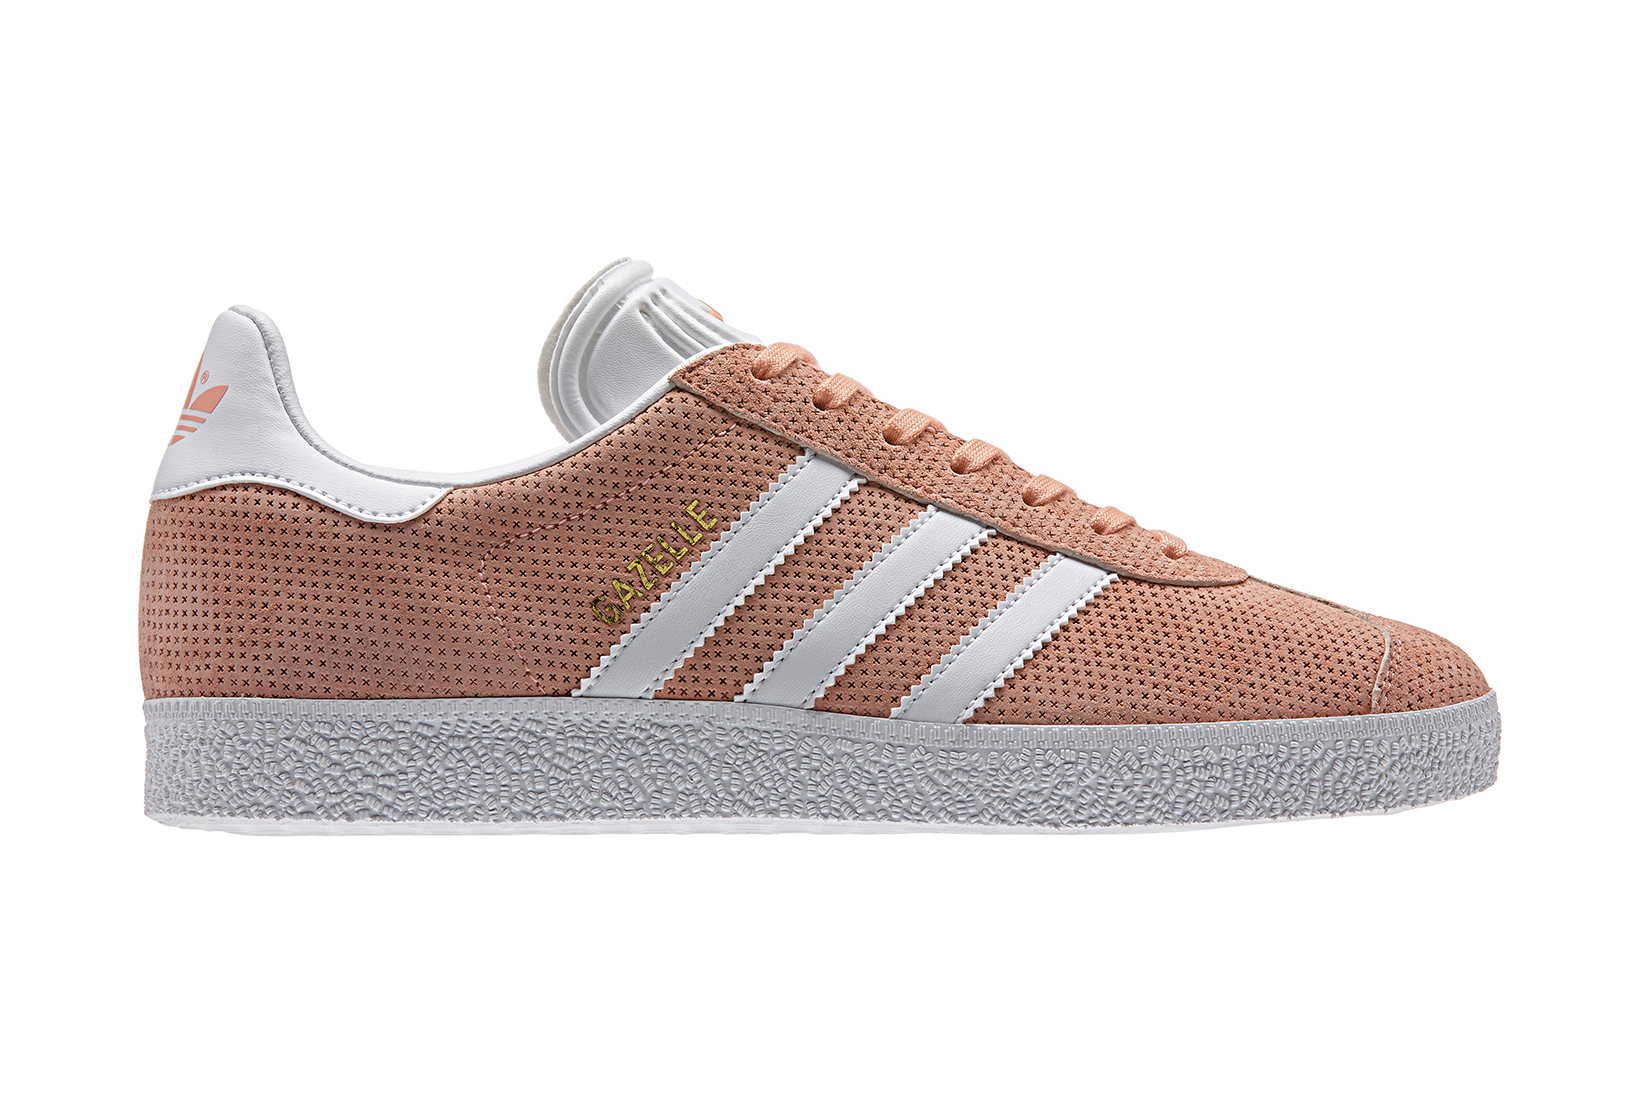 adidas Gives the Resurrected Gazelle a High-End Material Treatment